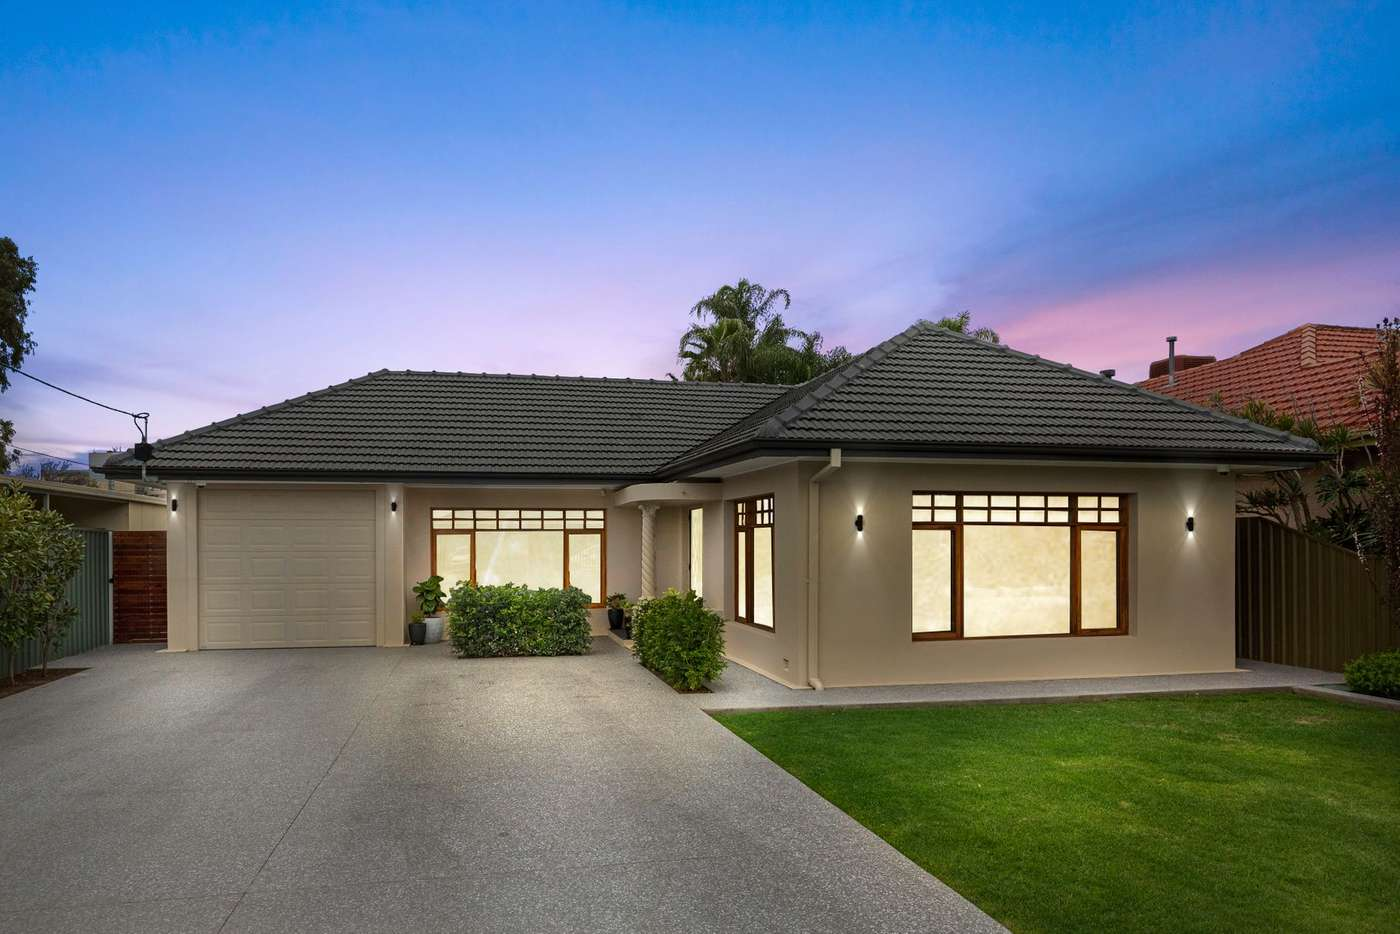 Main view of Homely house listing, 24 Glen Eira Street, Woodville South SA 5011